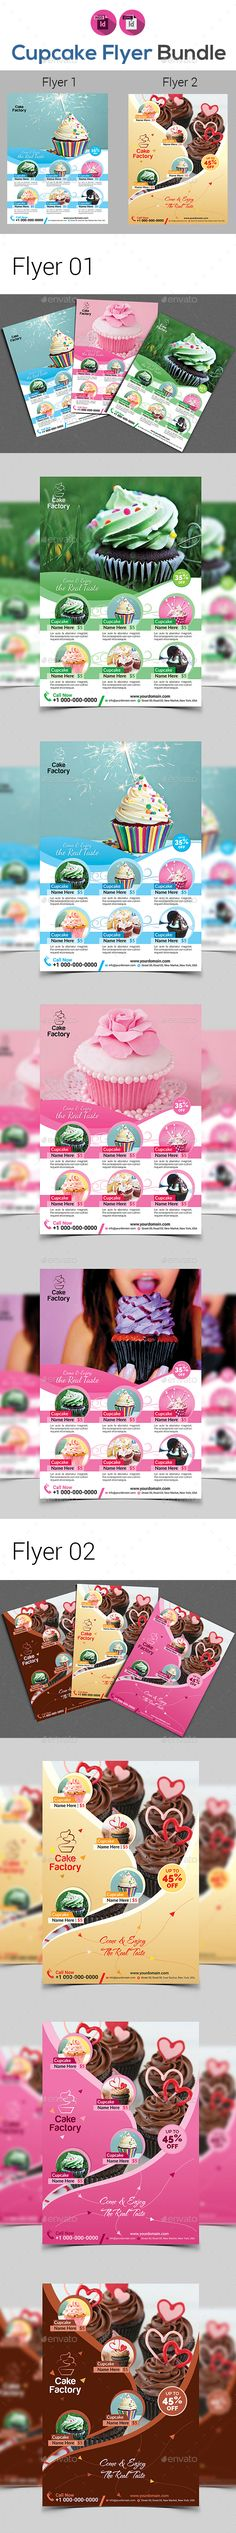 "Cup Cake Shop Flyer Bundle by aam360 FEATURES:Flyer01 Size 8.27""x11.69""Bleed: .25""Three color variations (Cyan, Green, Magenta) Files Included : Adobe IndesignCS4& CC("